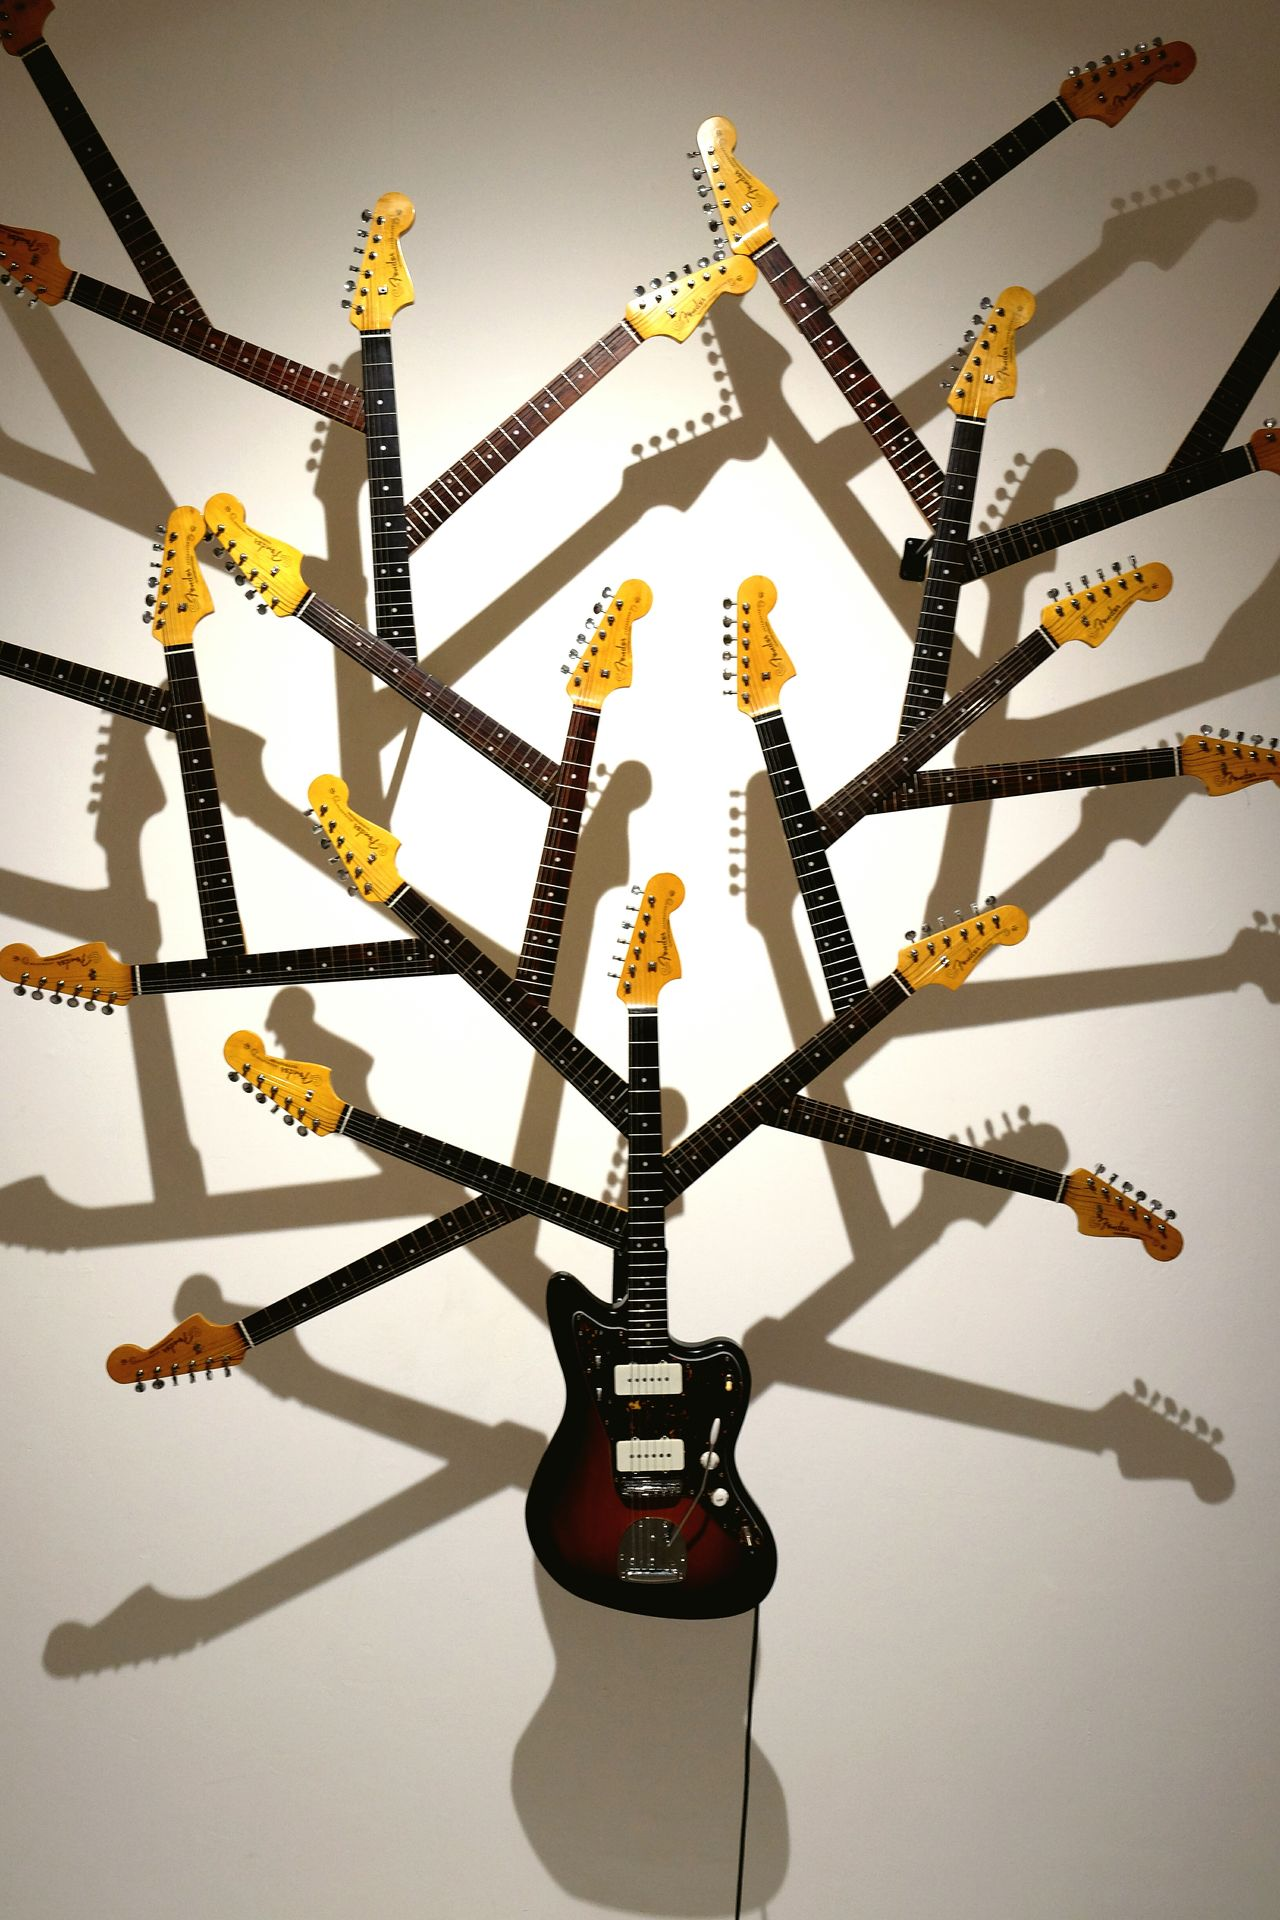 No People Symmetry Guitar Electric Guitar Branches Tree Art Art Piece Artistic